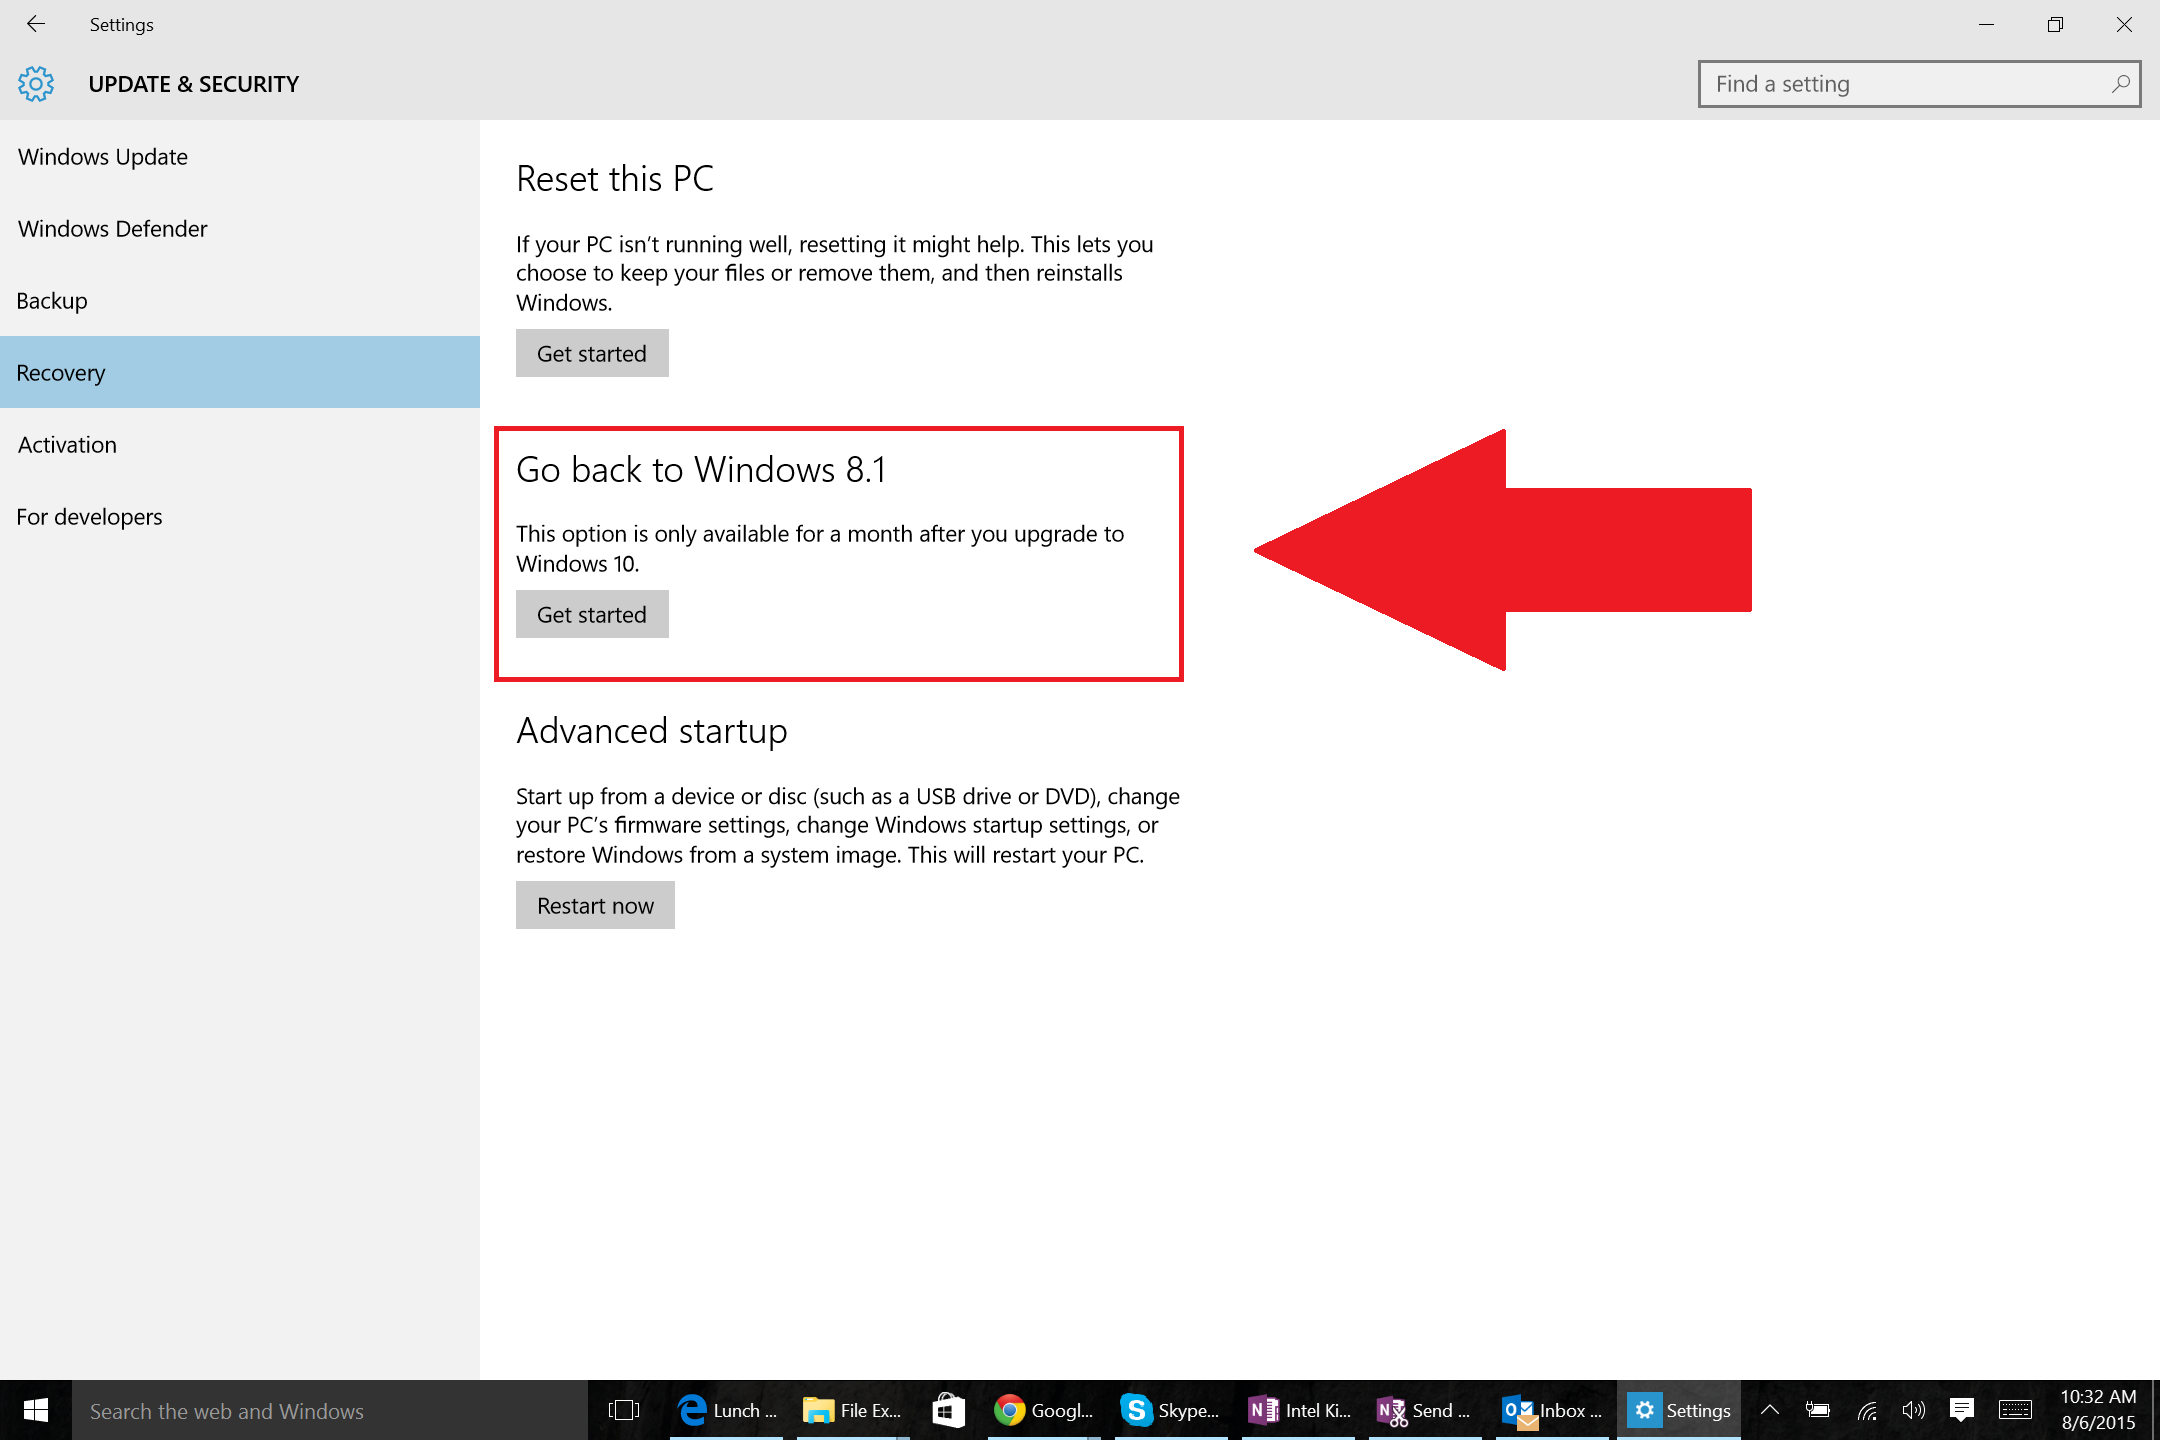 How to go back to Windows 7 or 8 after an unwanted Windows